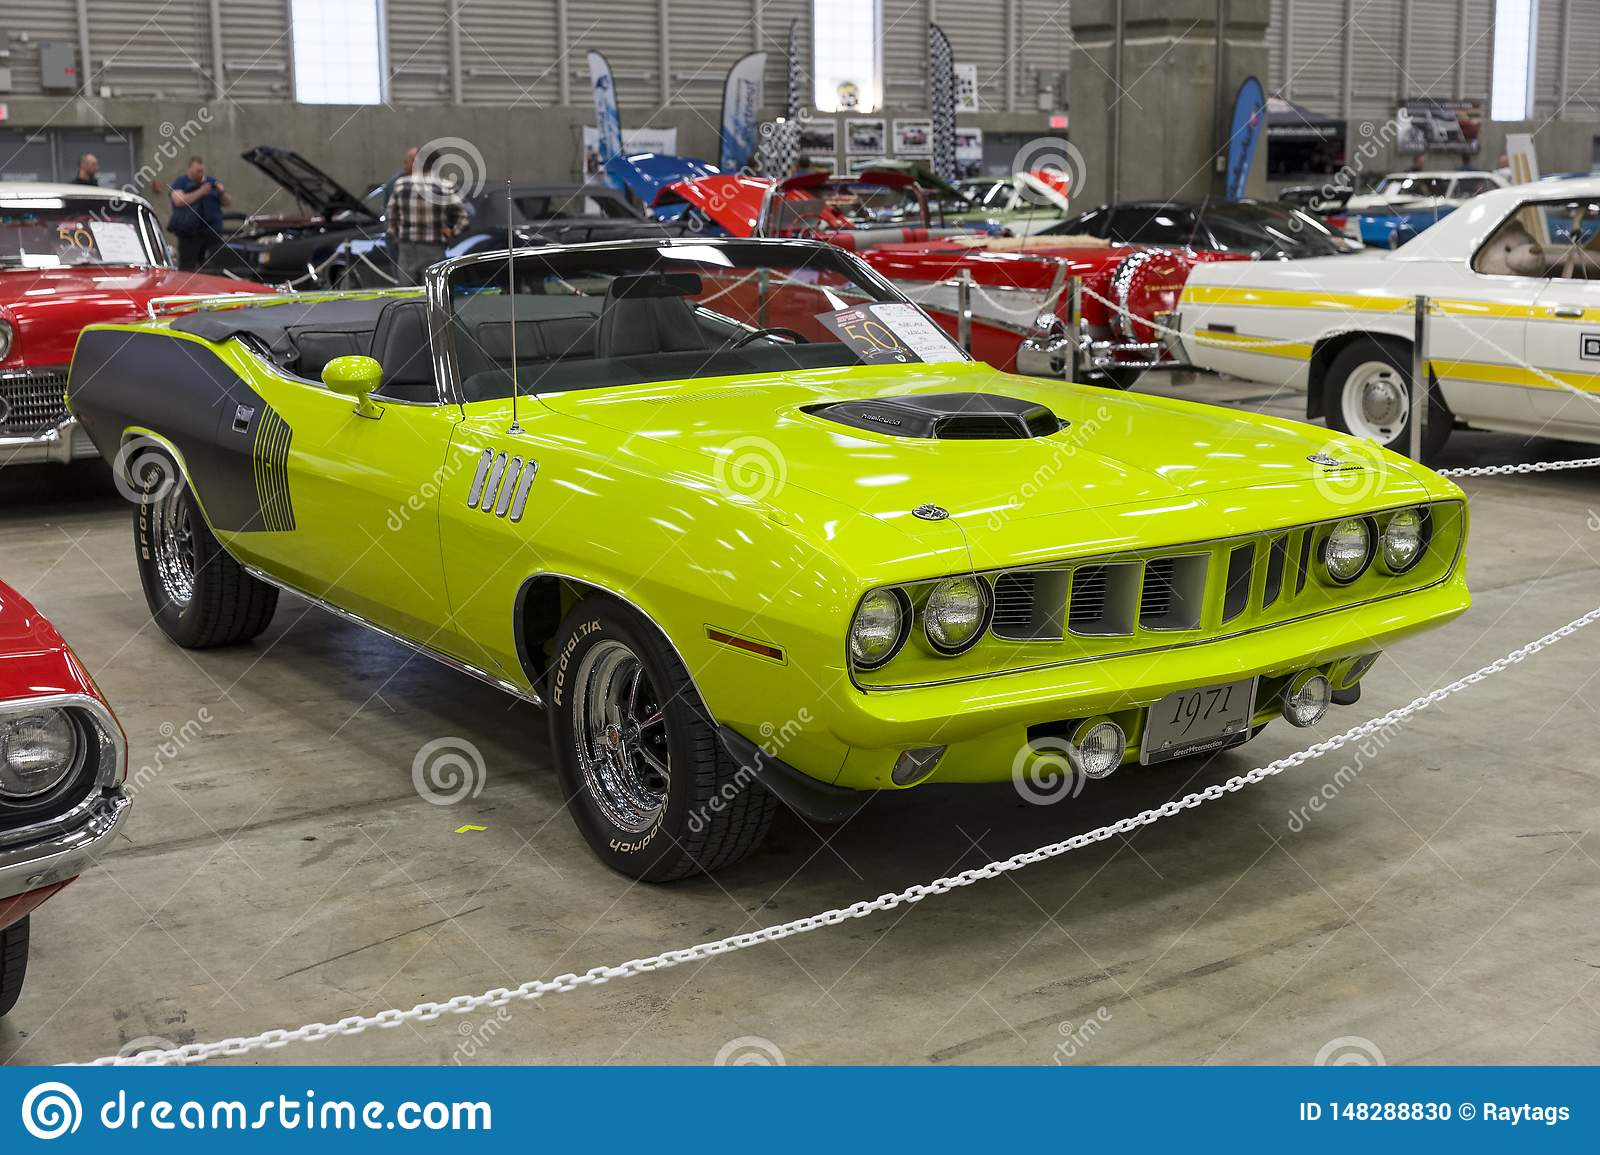 1971 plymouth hemi cuda convertible front side view